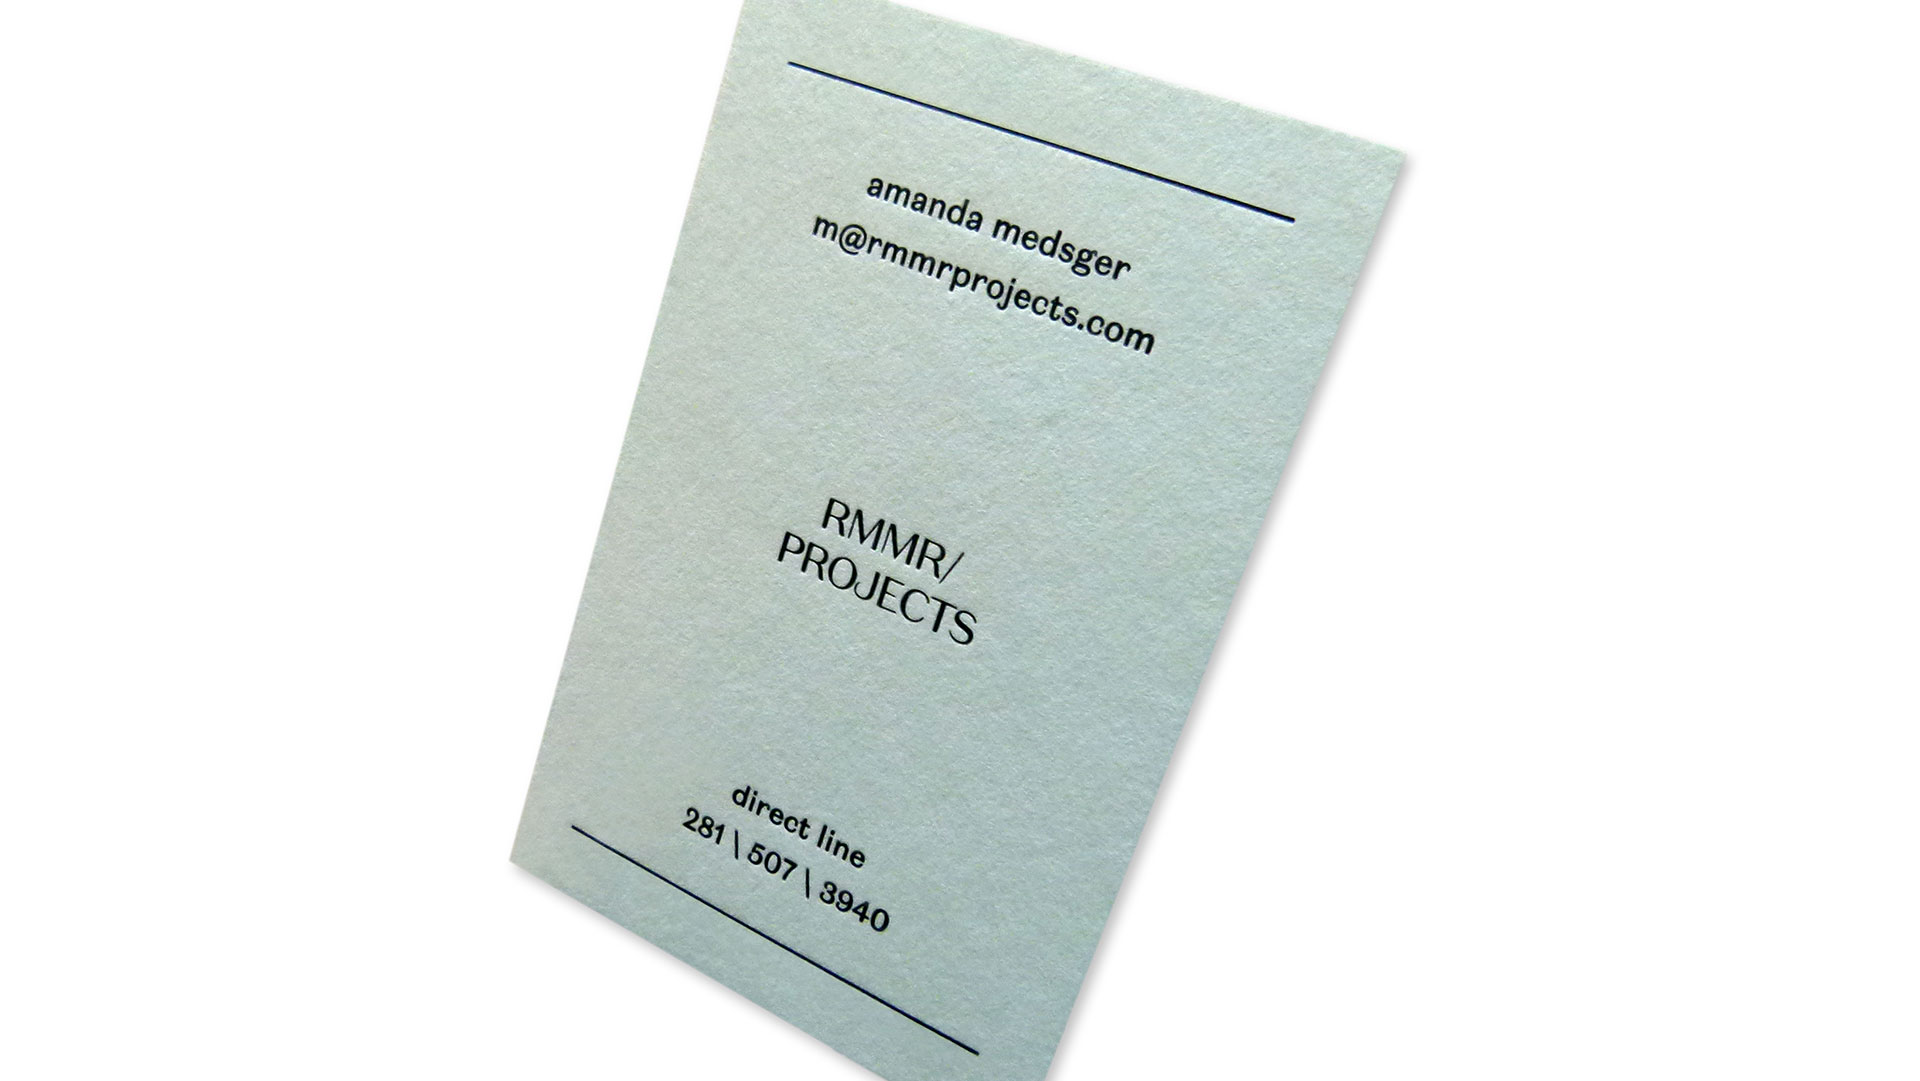 rmmr business cards